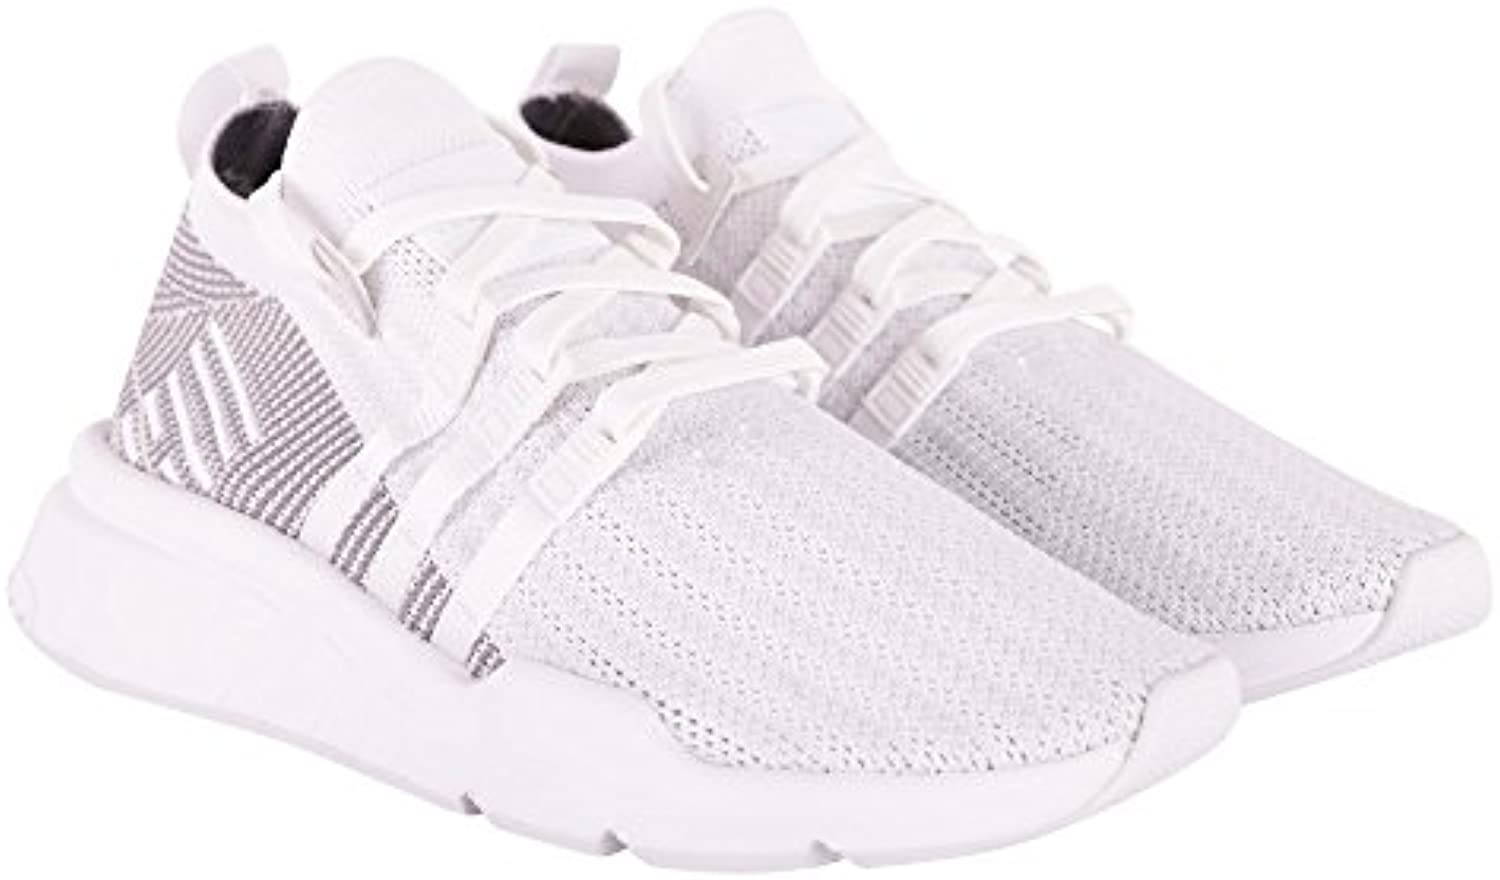 adidas Sneakers EQT Support Mid ADV CQ2997 White -